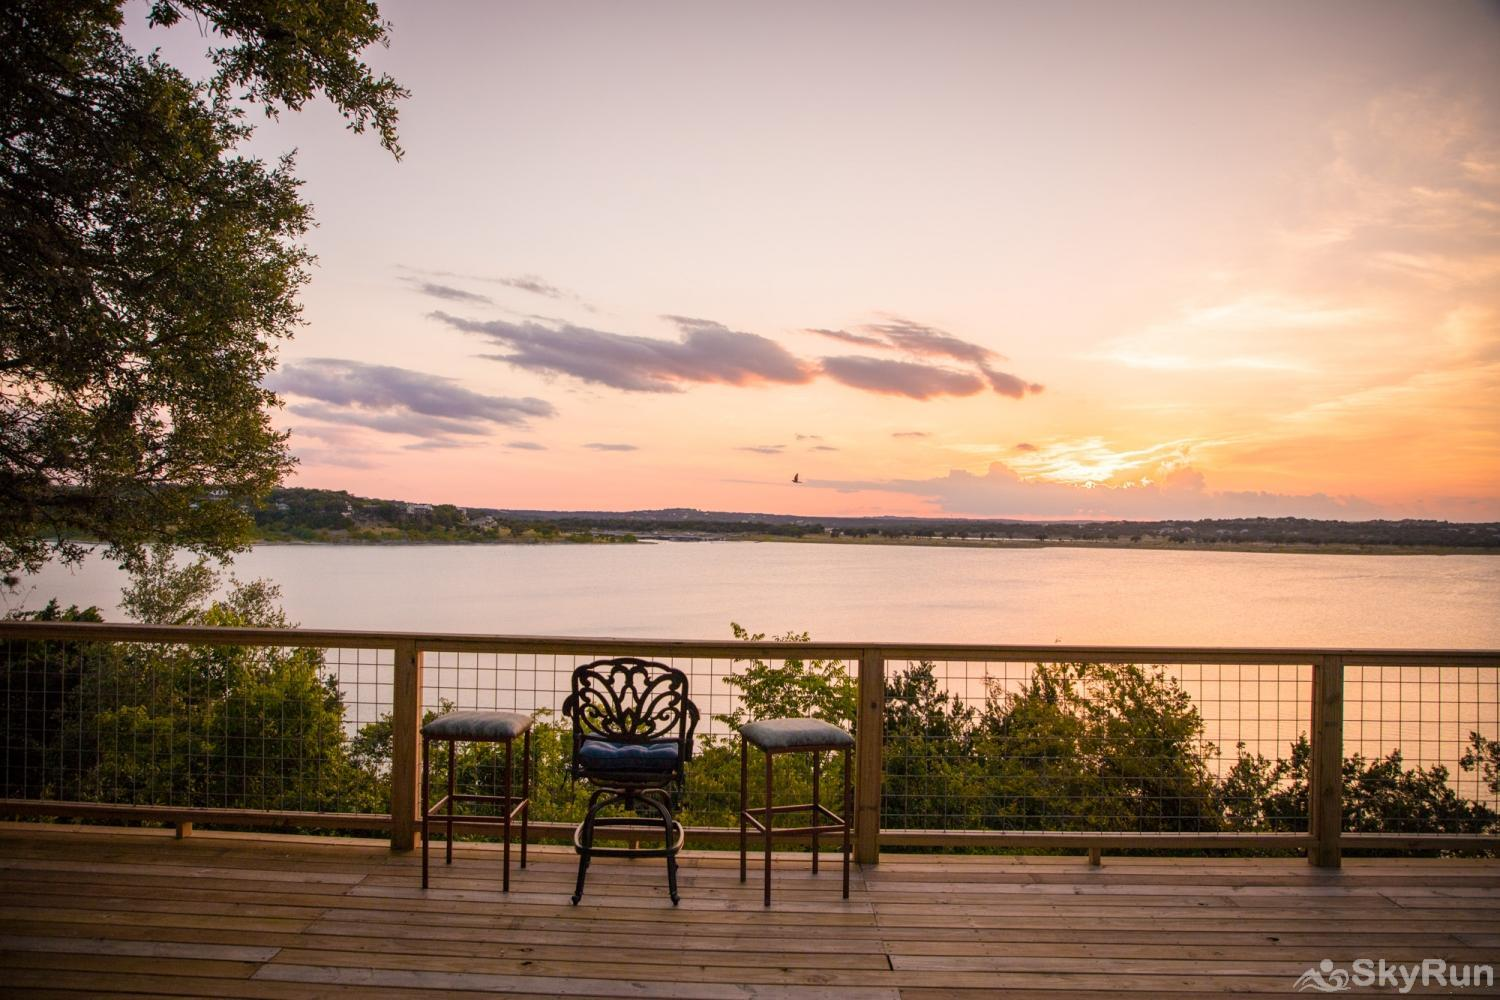 ANCHORS AWAY Book your Canyon Lake Vacation with SkyRun Vacation Rentals Today!